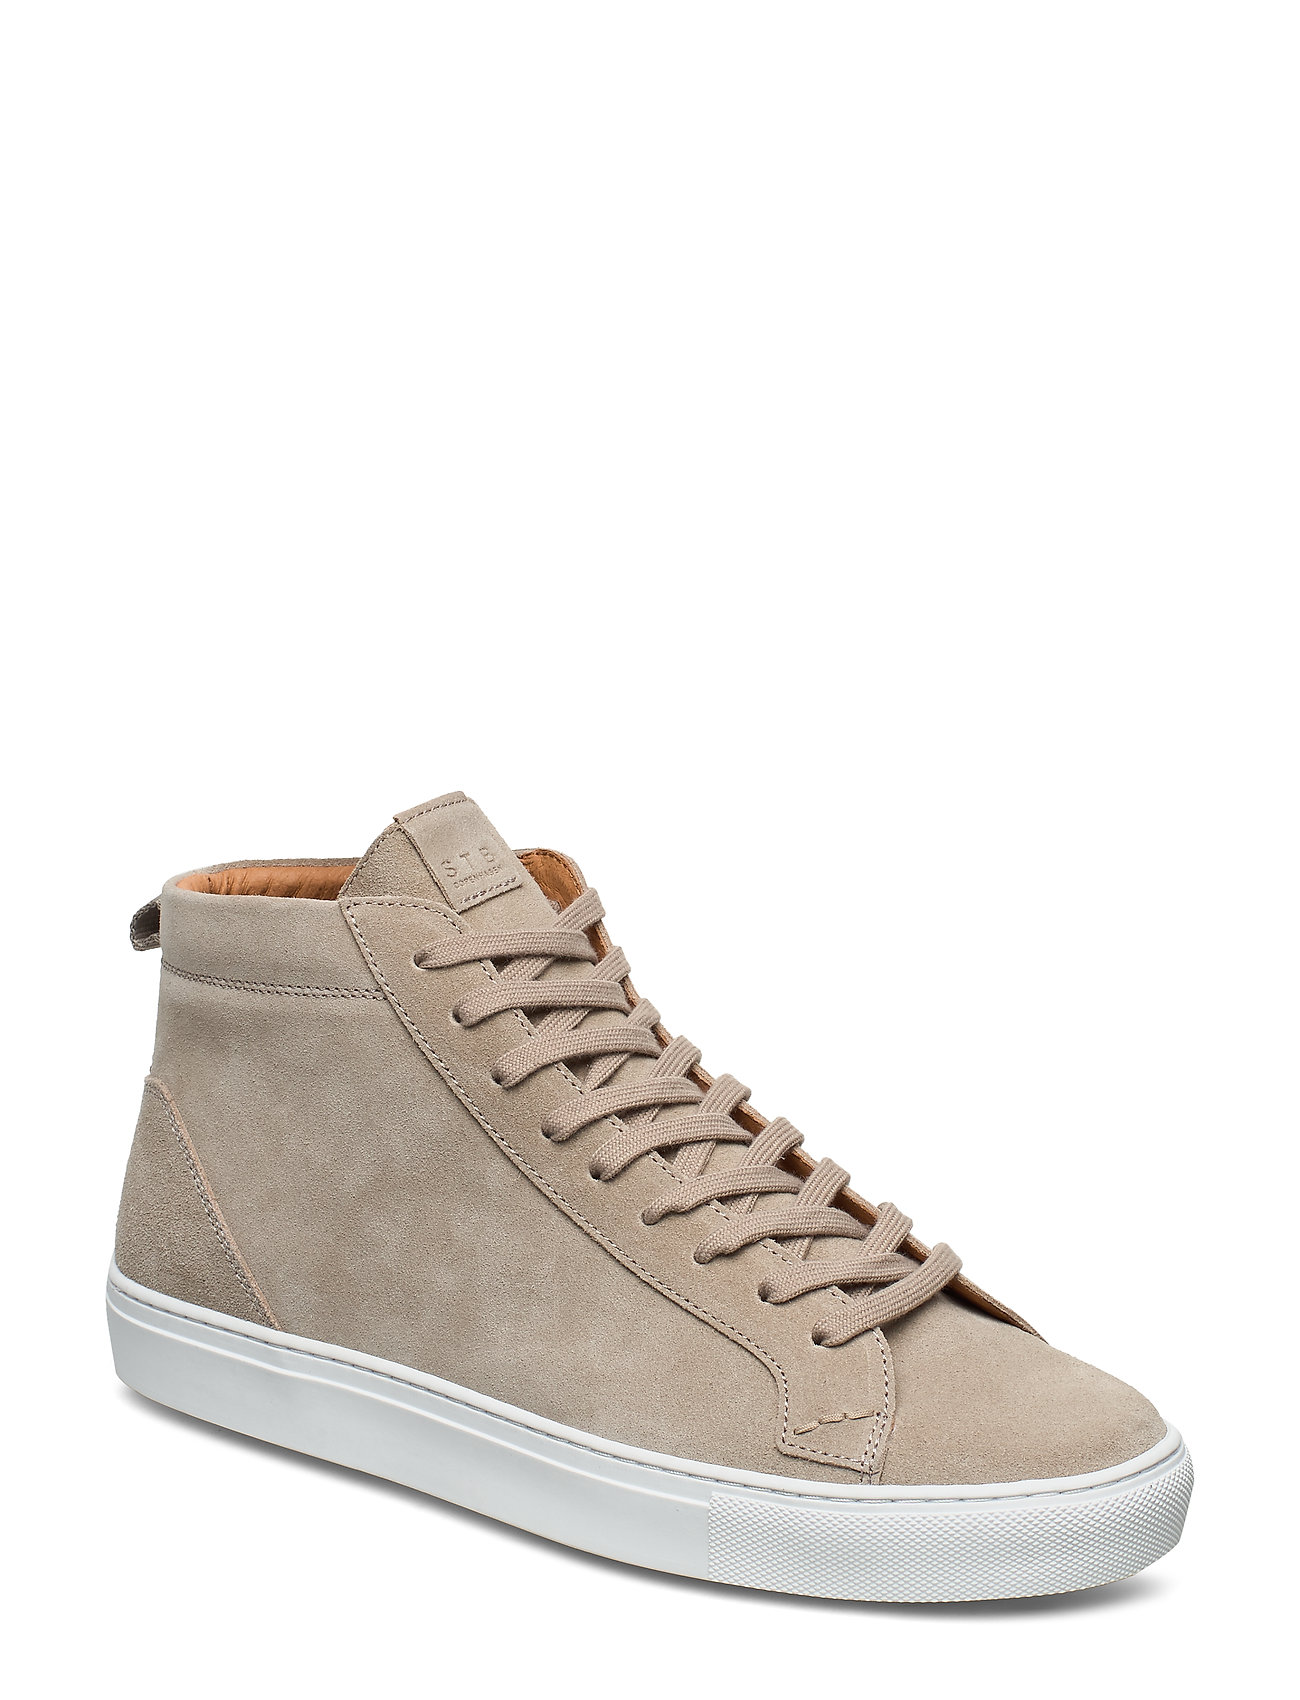 Image of Stb-Holmes S High-top Sneakers Beige Shoe The Bear (3356552565)